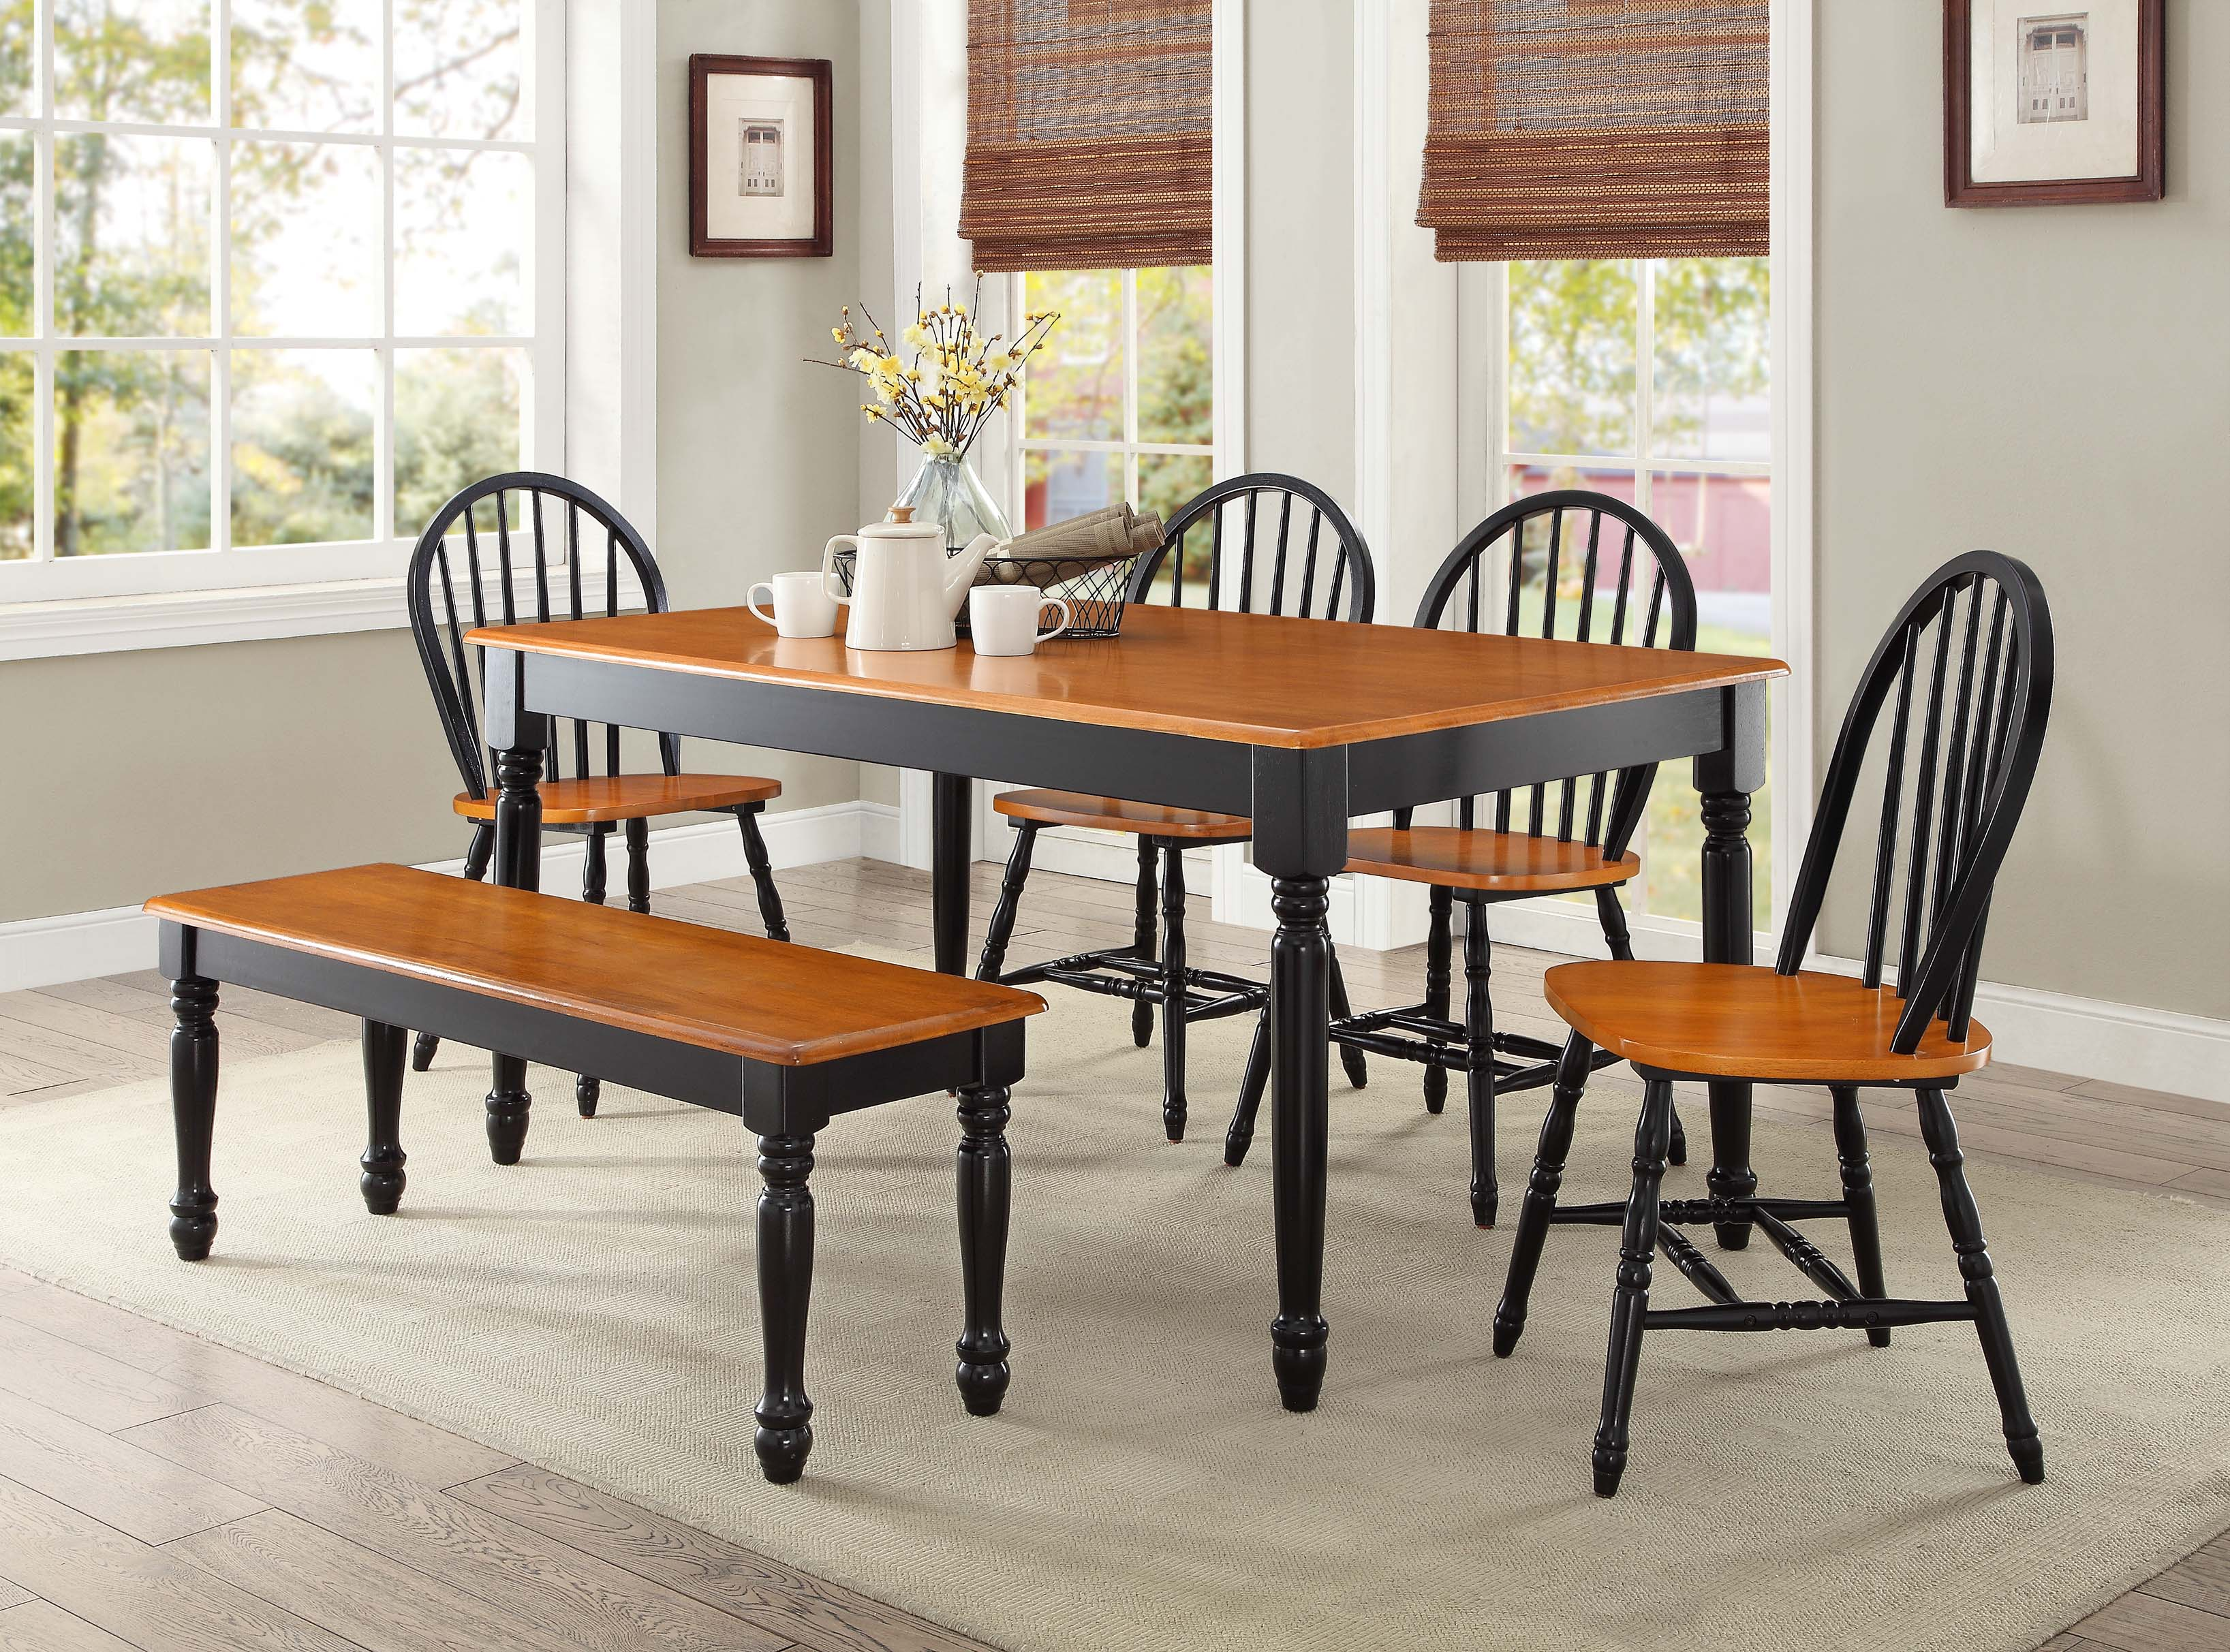 Dining Room Table Set Unique Kitchen & Dining Furniture  Walmart Design Decoration